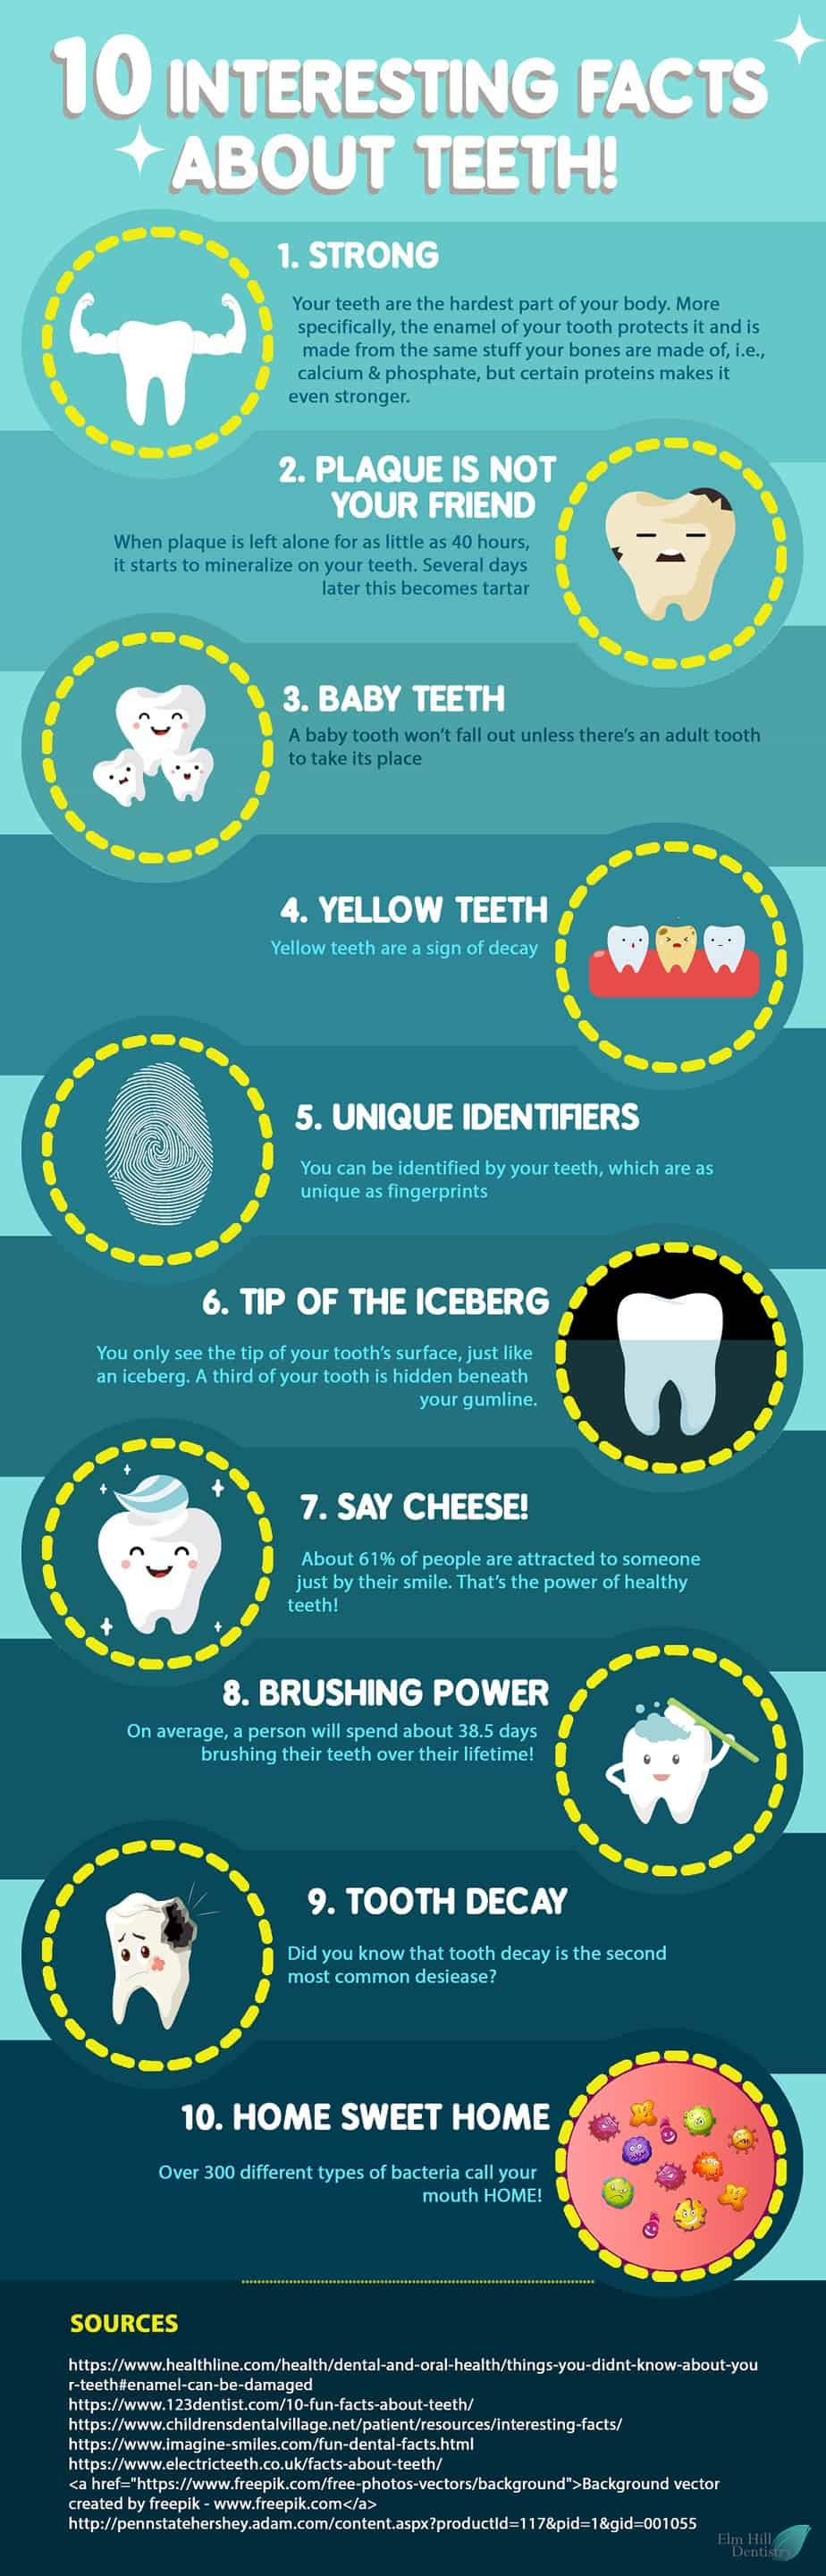 Did You Know These Facts About Your Teeth? - Infographic